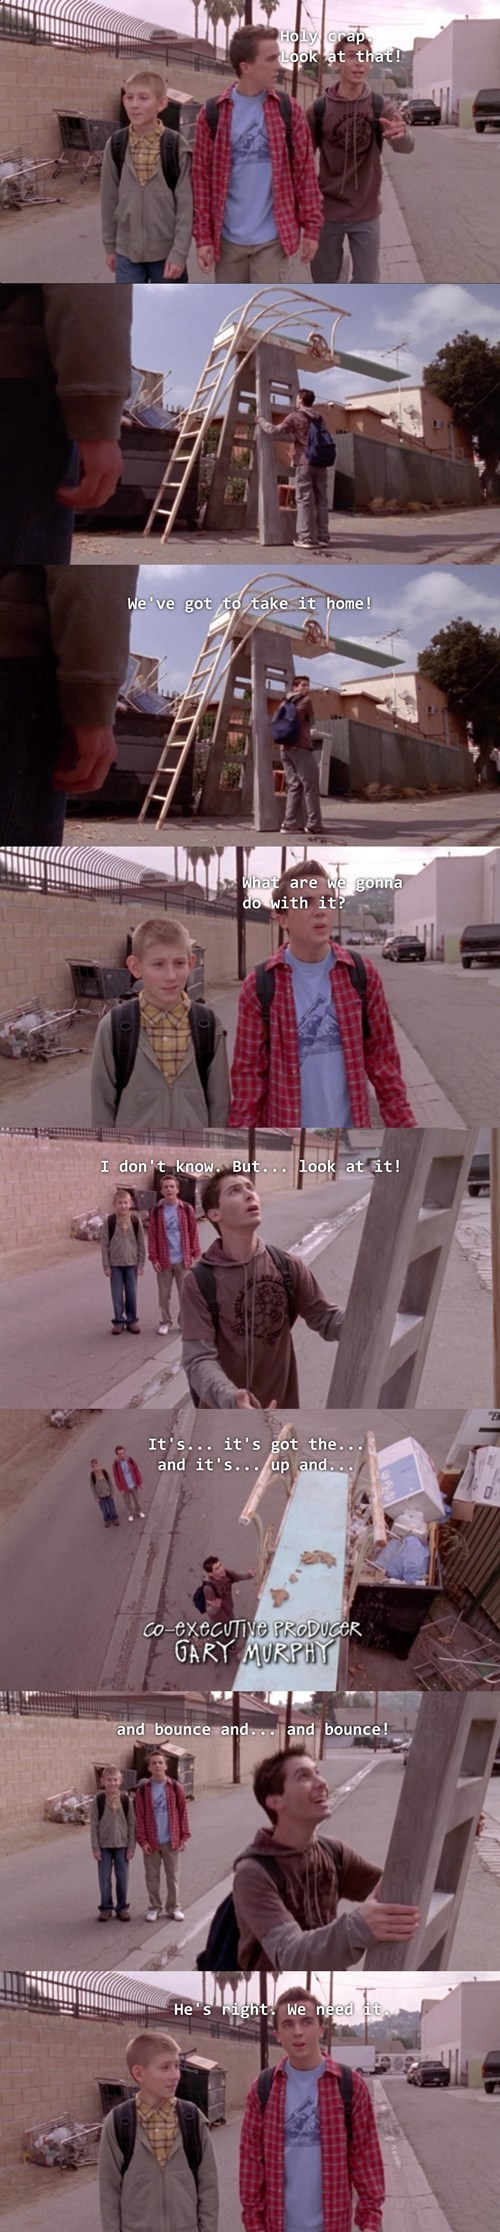 malcolm in the middle,swimming pool